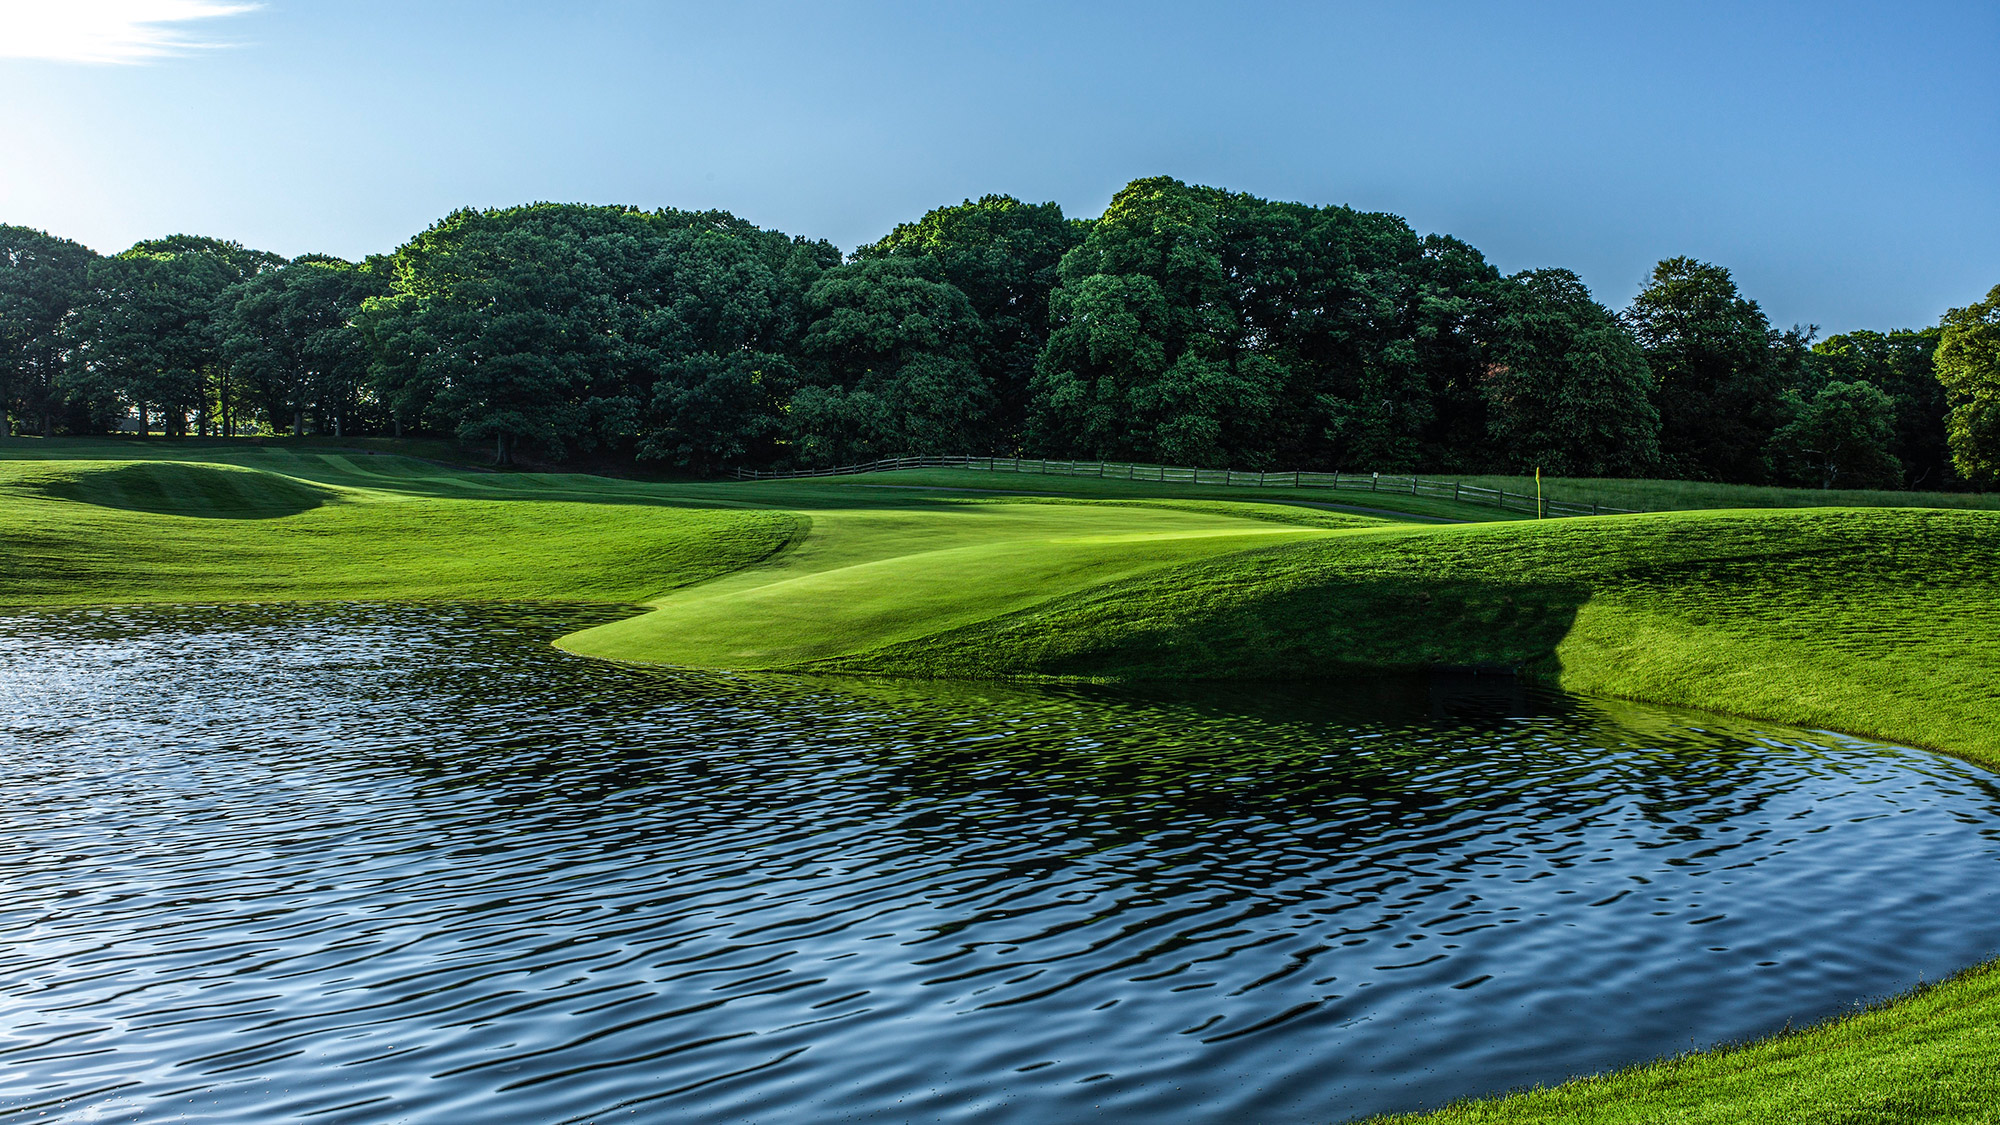 Northern Trust replaces Barclays as title sponsor of the first FedEx Cup Playoff event, in late August, at Long Island's Glen Oaks Club. The 1971 Joe Finger design was reworked by Joel Weiman and boasts superb conditioning, courtesy of superintendent Craig Currier, who formerly tended the blades at Bethpage Black.